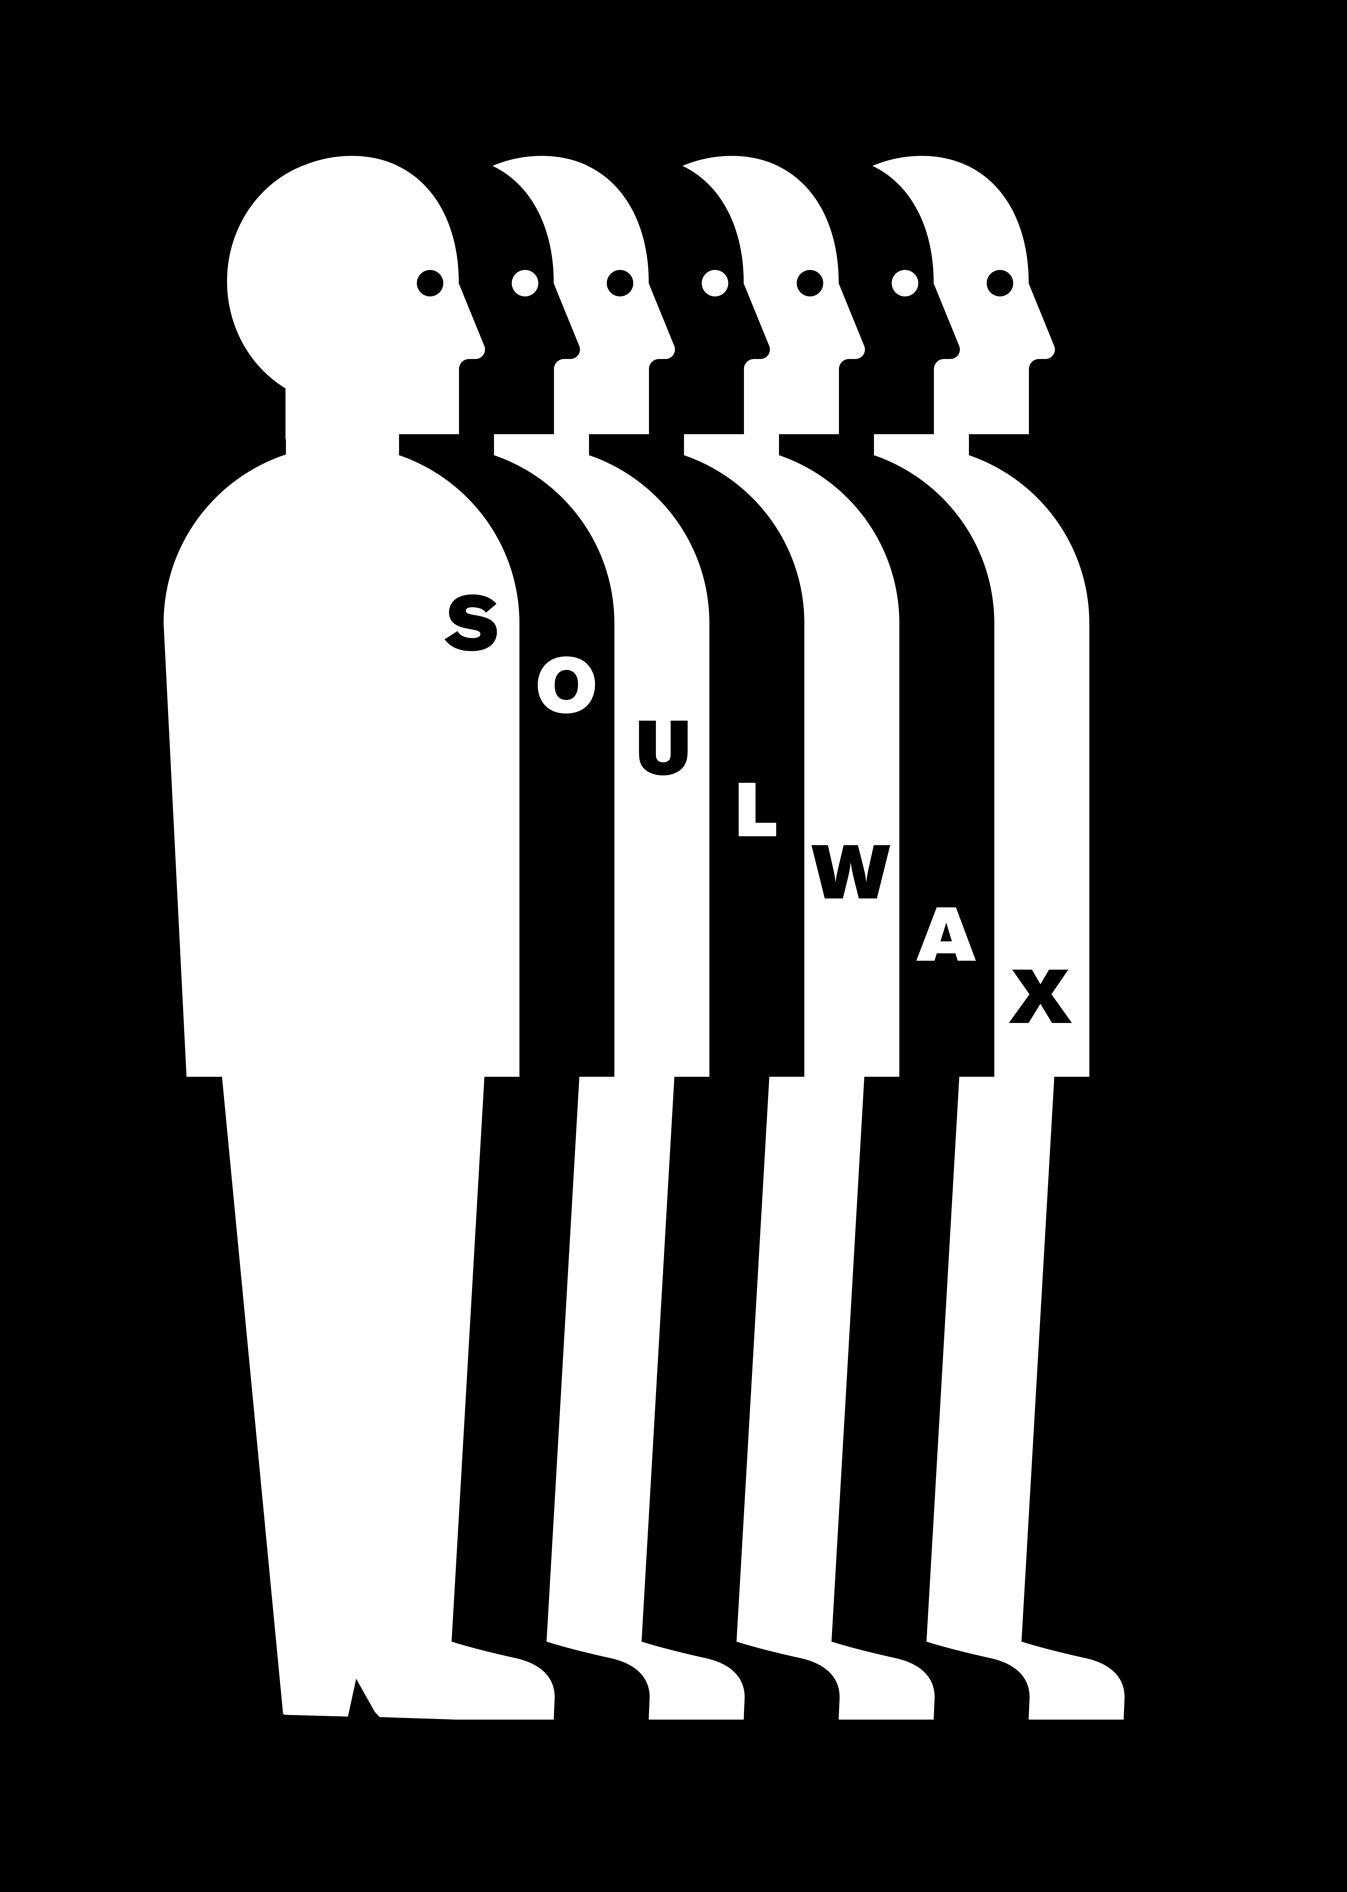 Soulwax UK logo